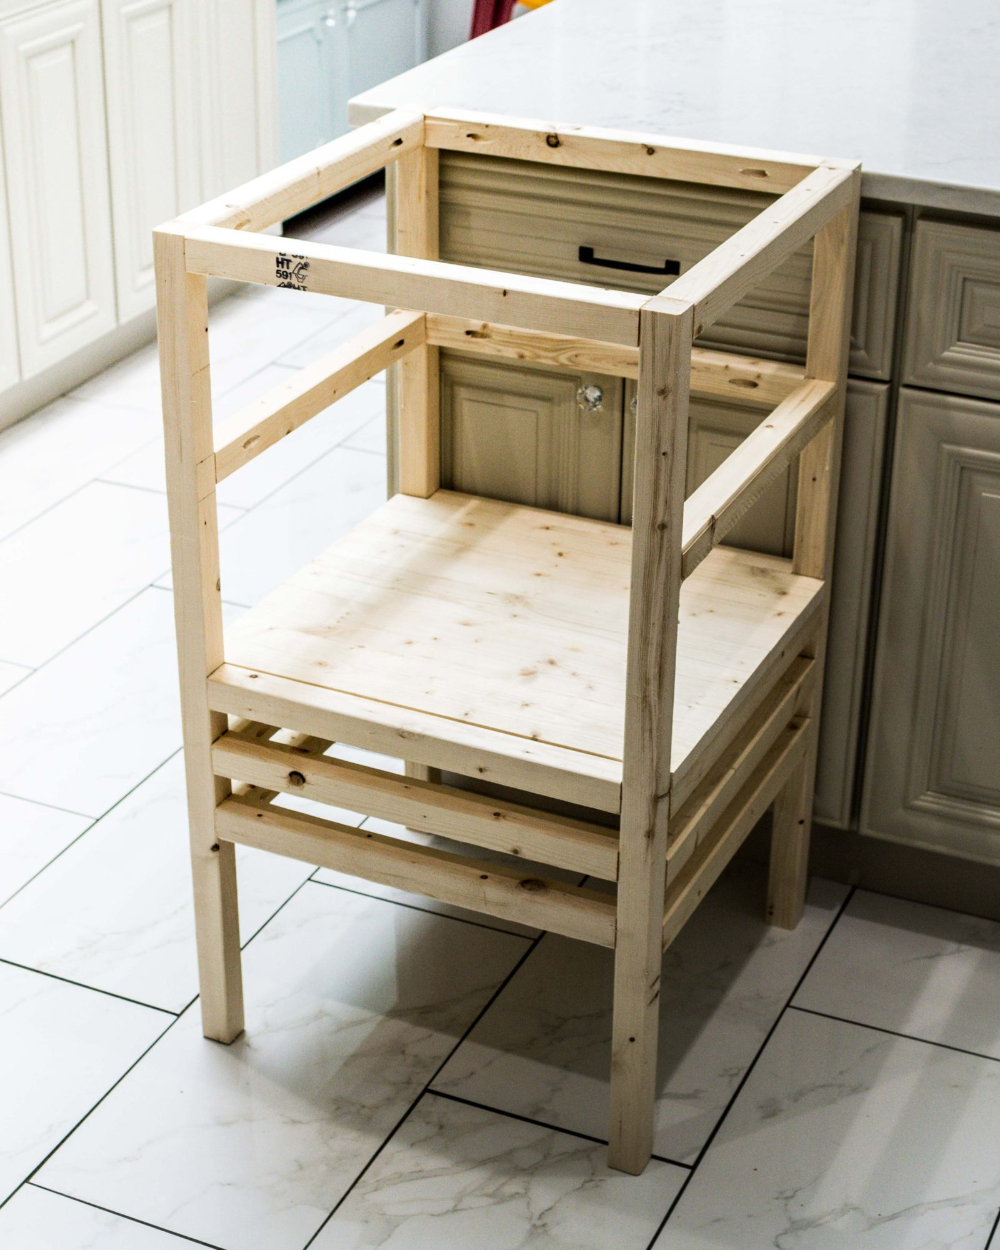 How to Build a DIY Stool Tower Kitchen Helper for Toddlers